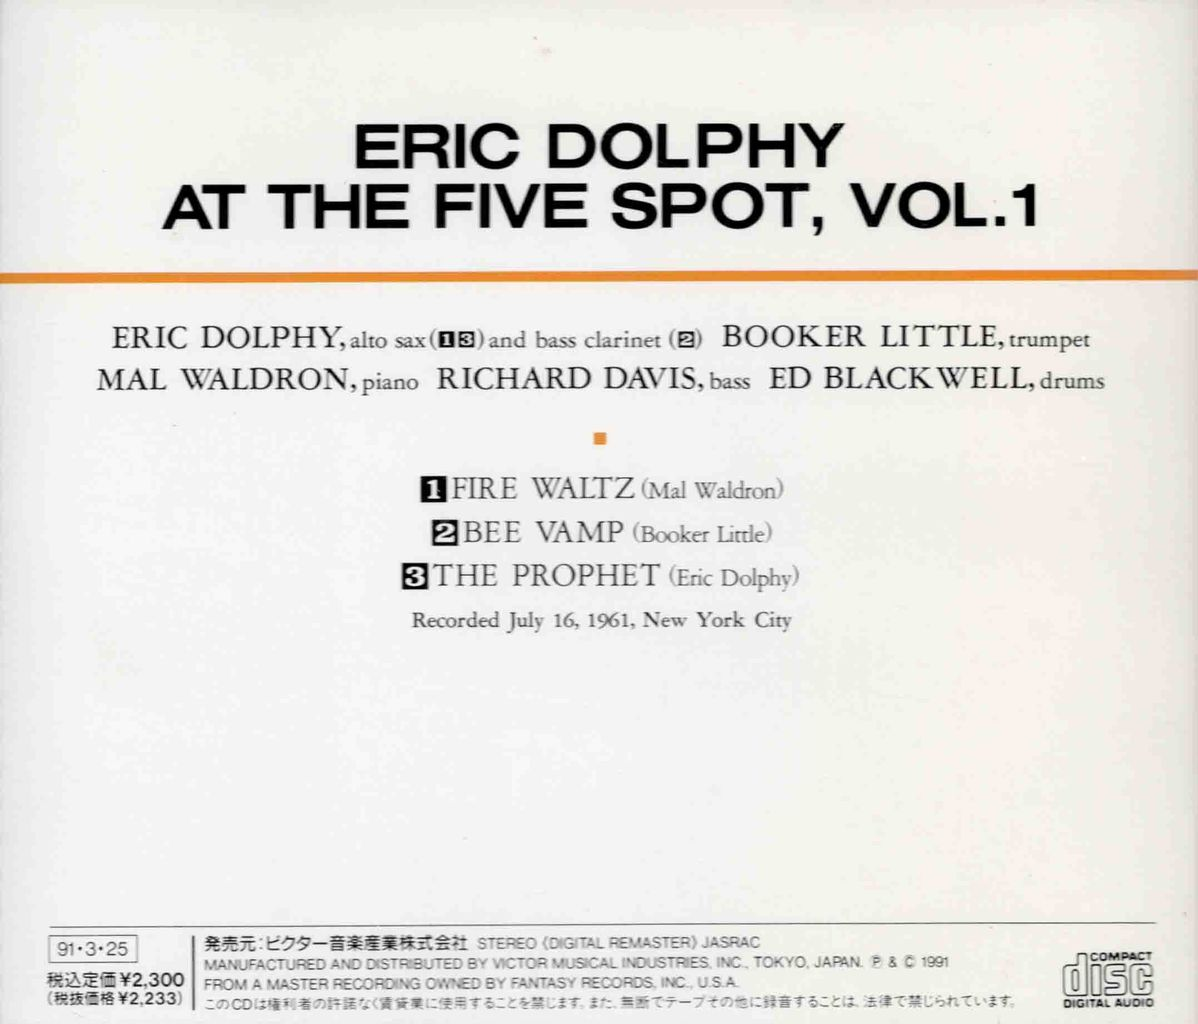 ERIC DOLPHY AT THE FIVE SPOT, VOL.1-2